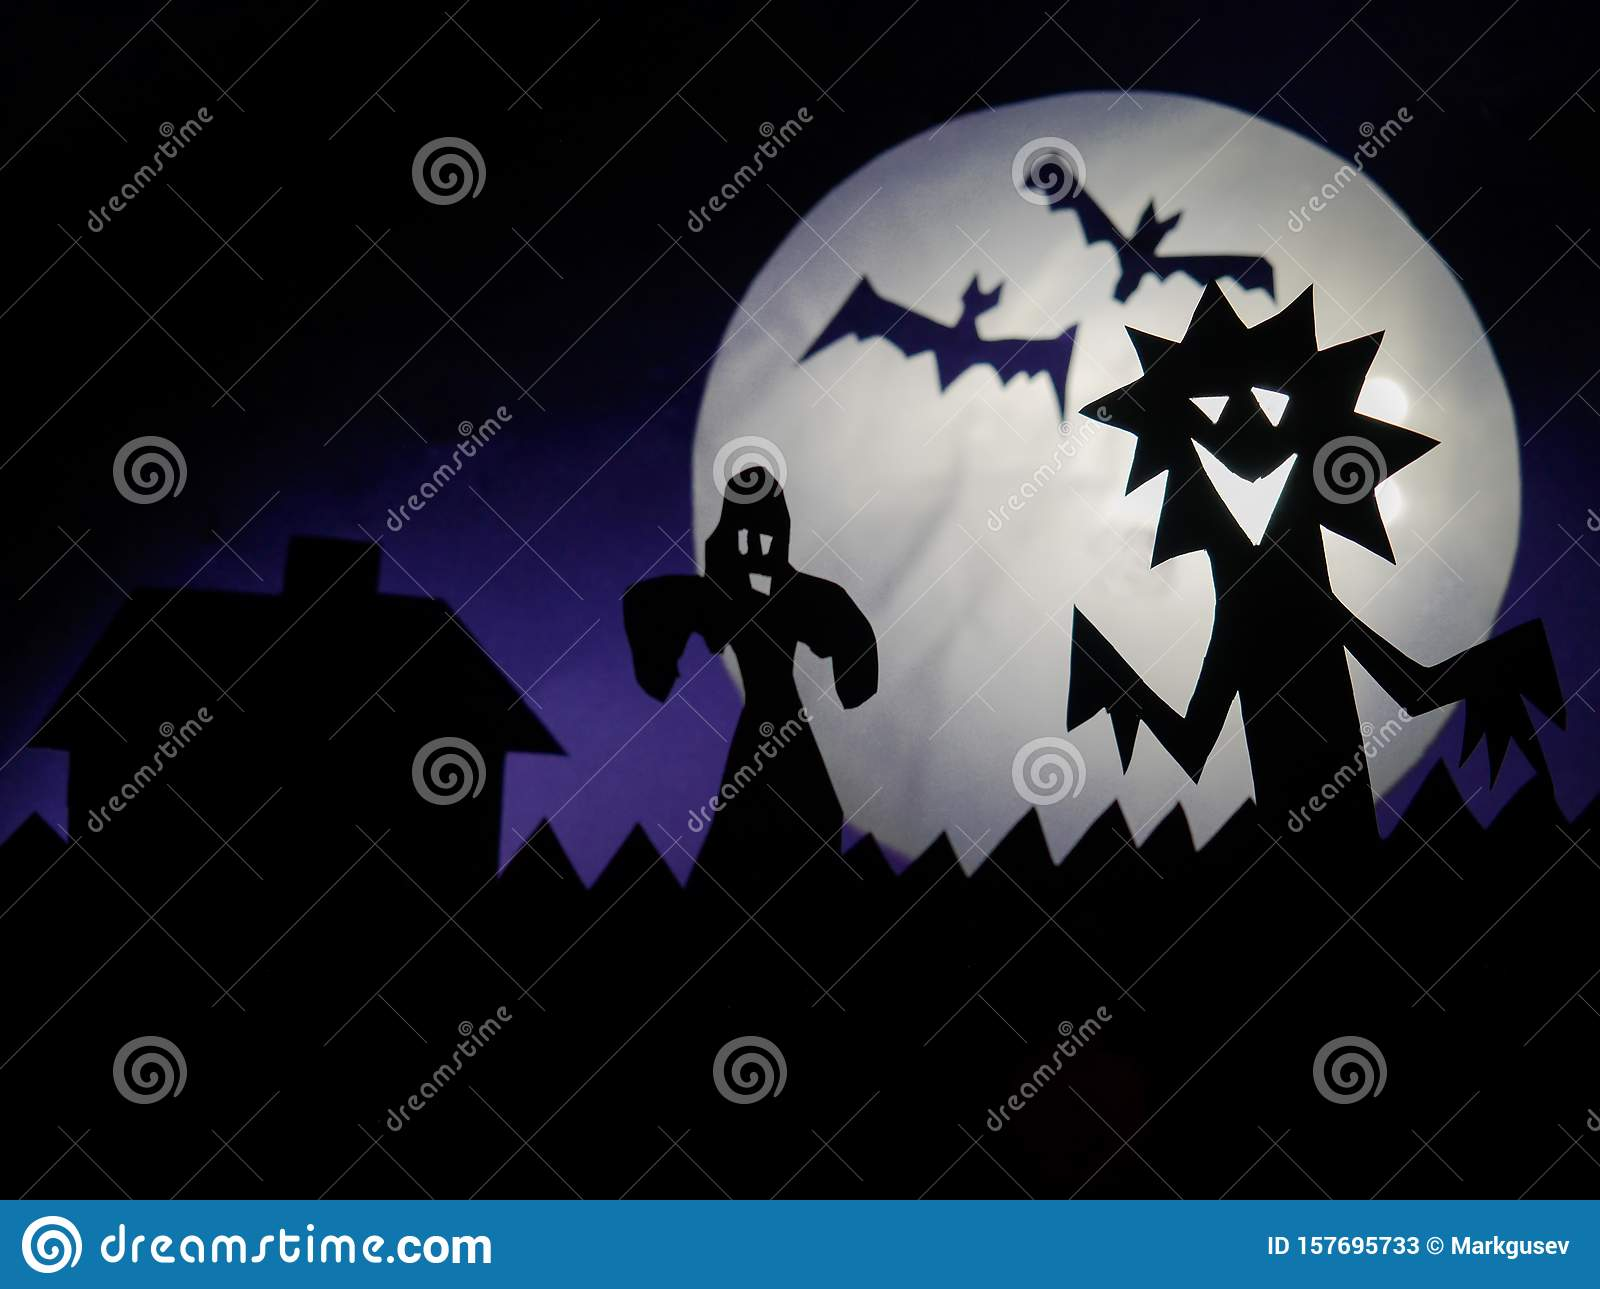 Dark Halloween season background with moon in the background and scary creatures silhouettes. Ghost, bats, and funny monster